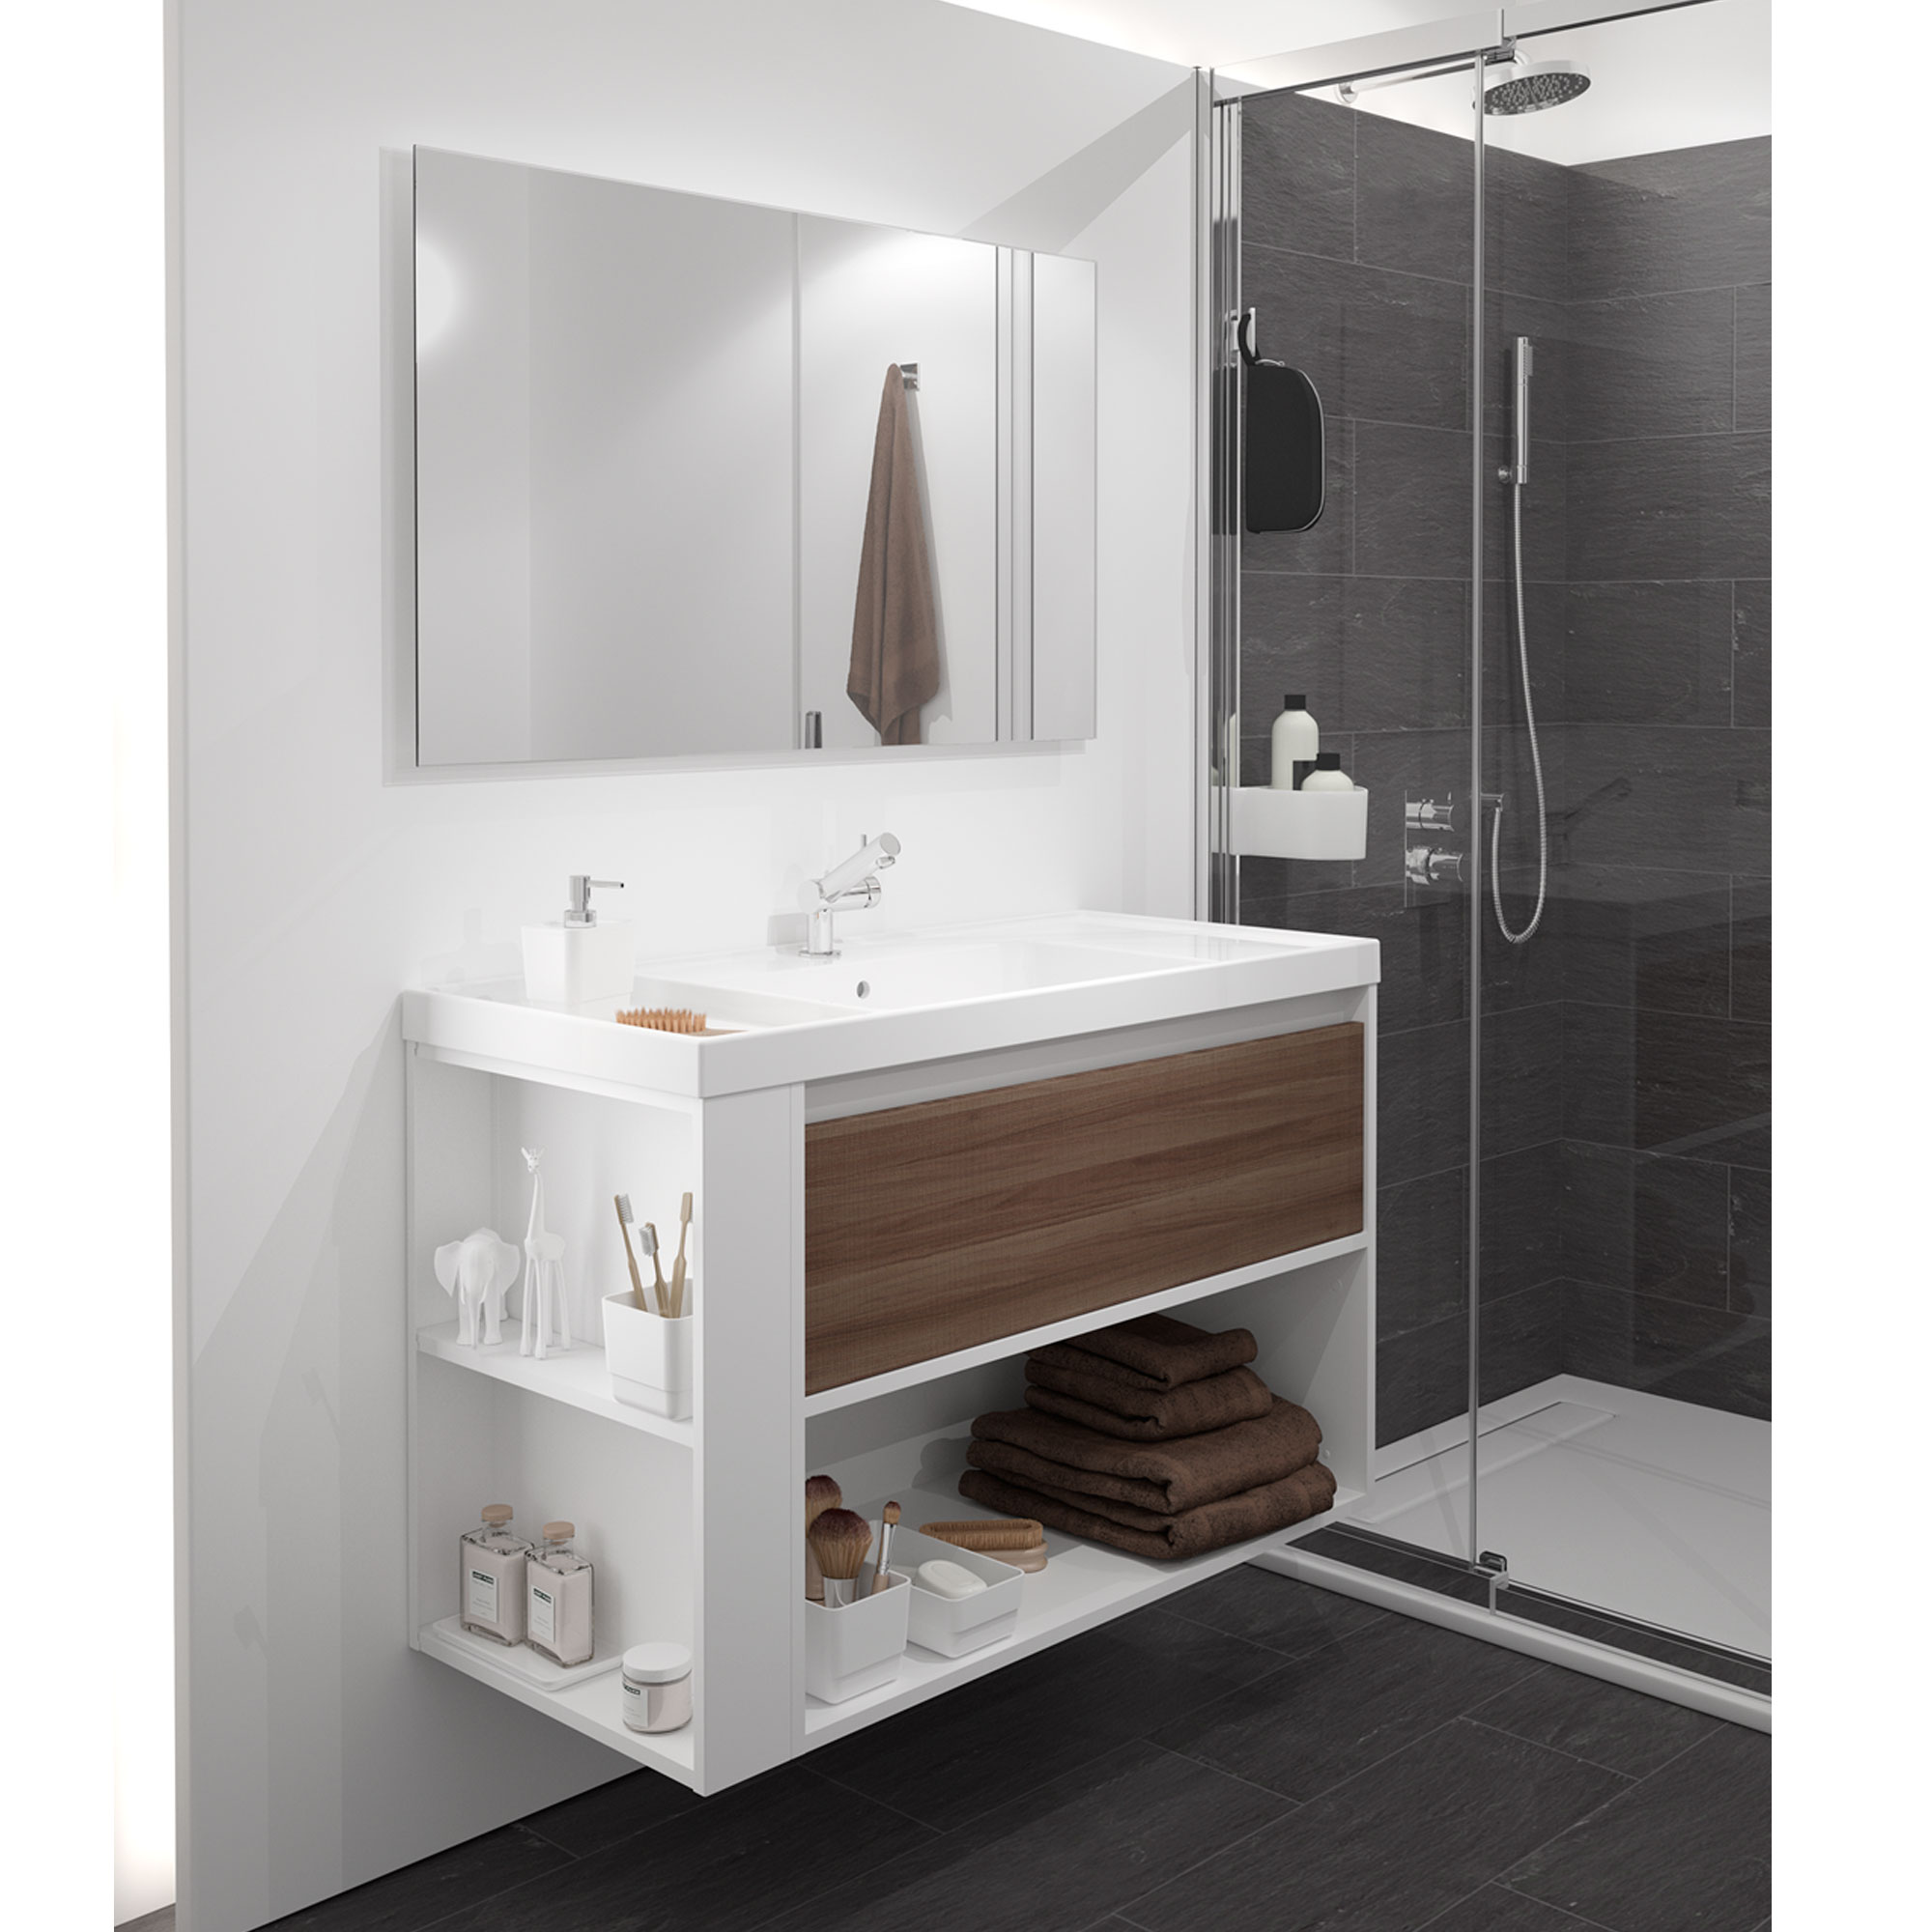 Muebles de baño SMART-B by Cosmic